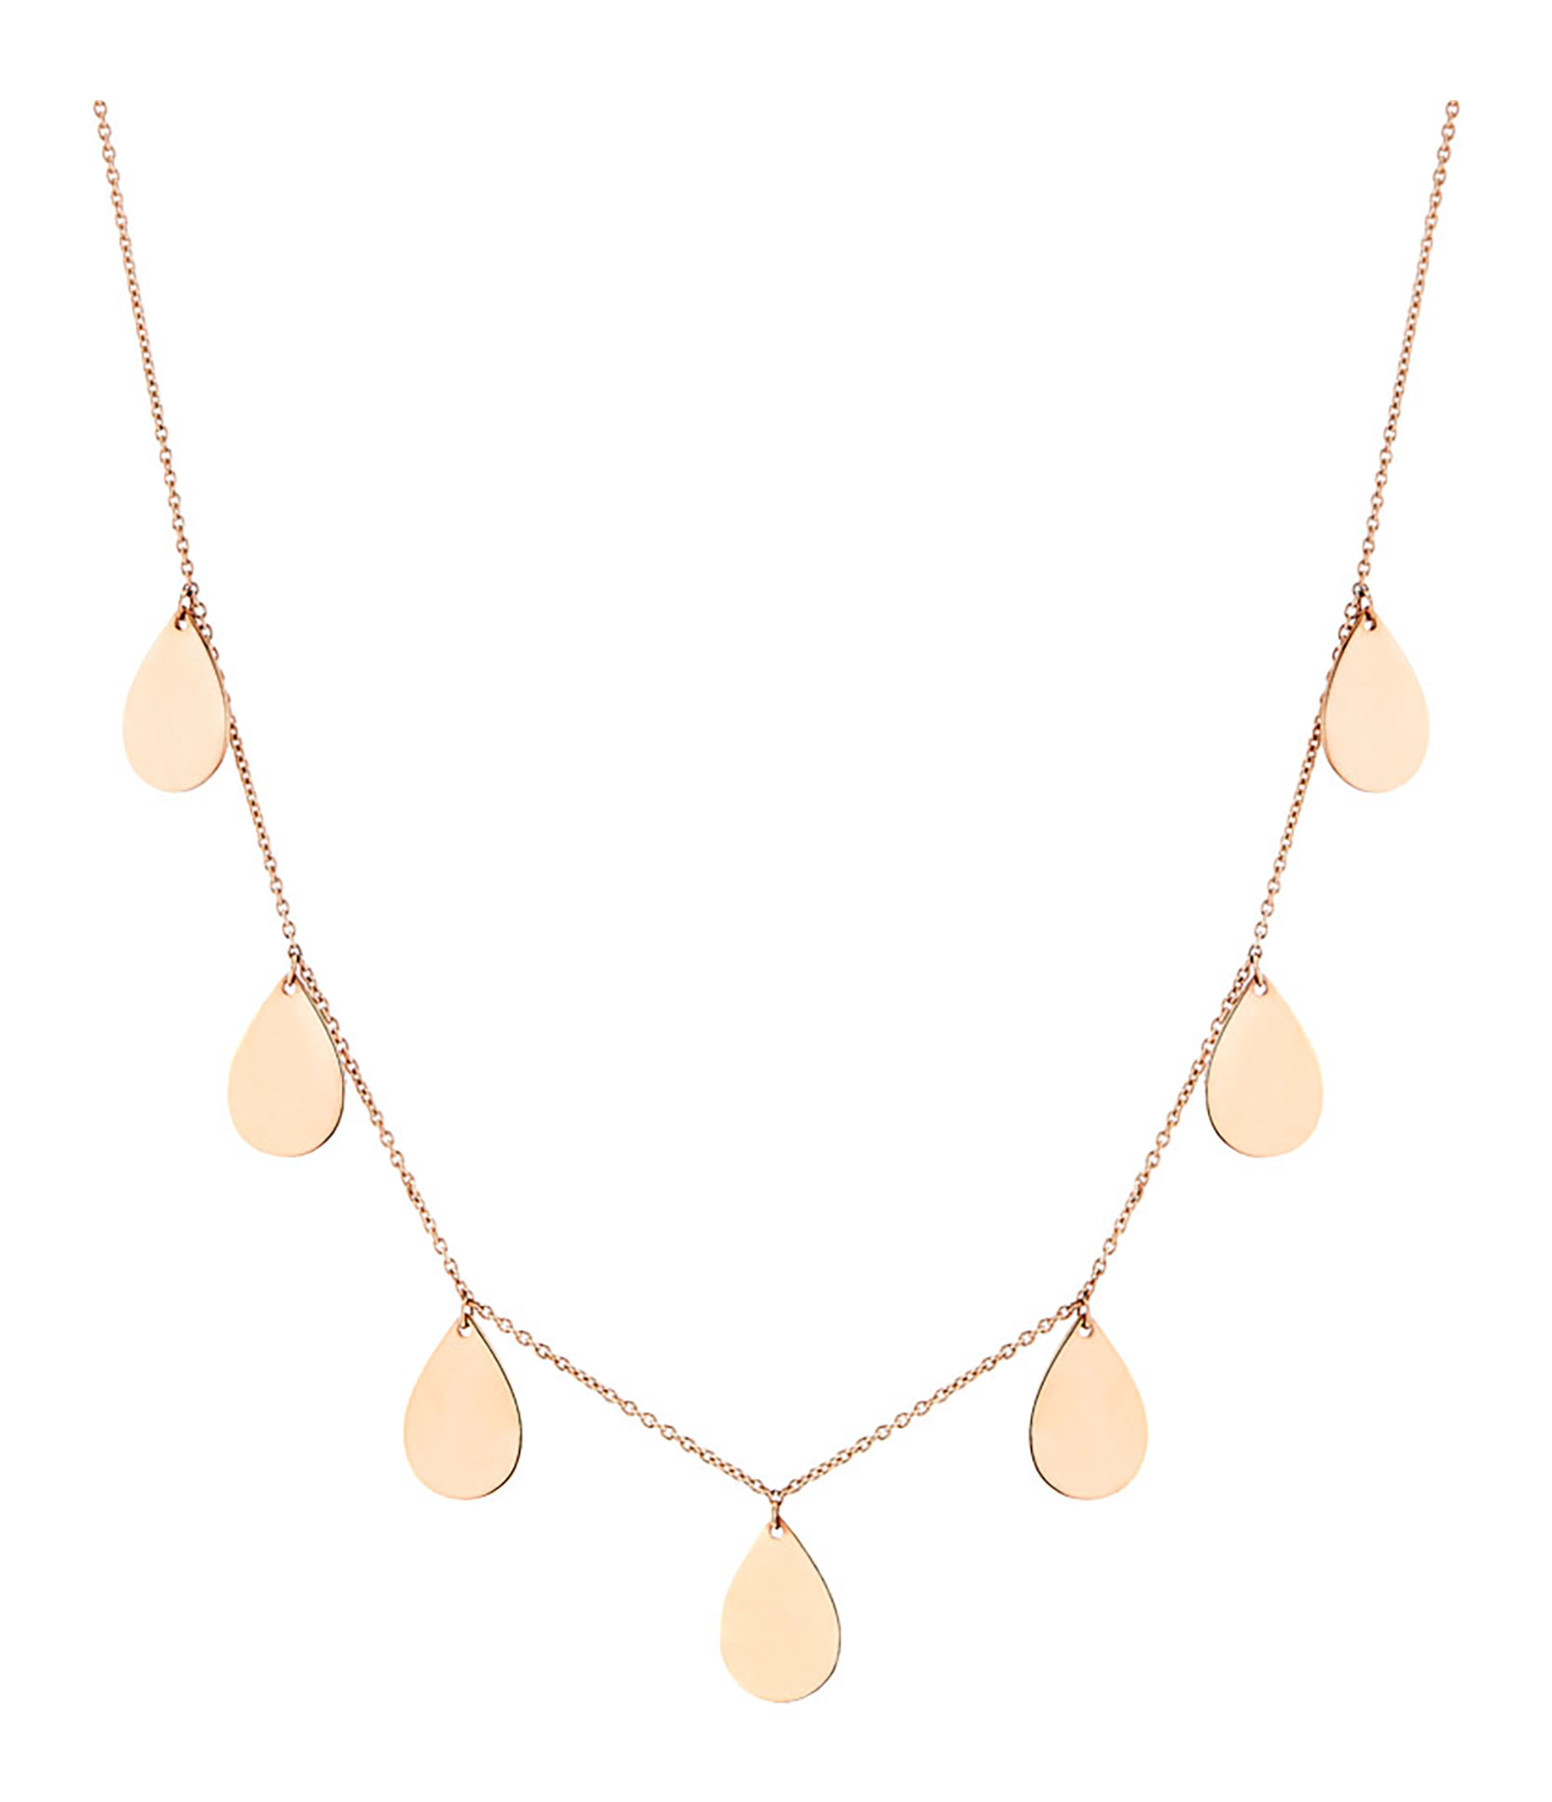 GINETTE NY - Collier 7 Bliss Or Rose